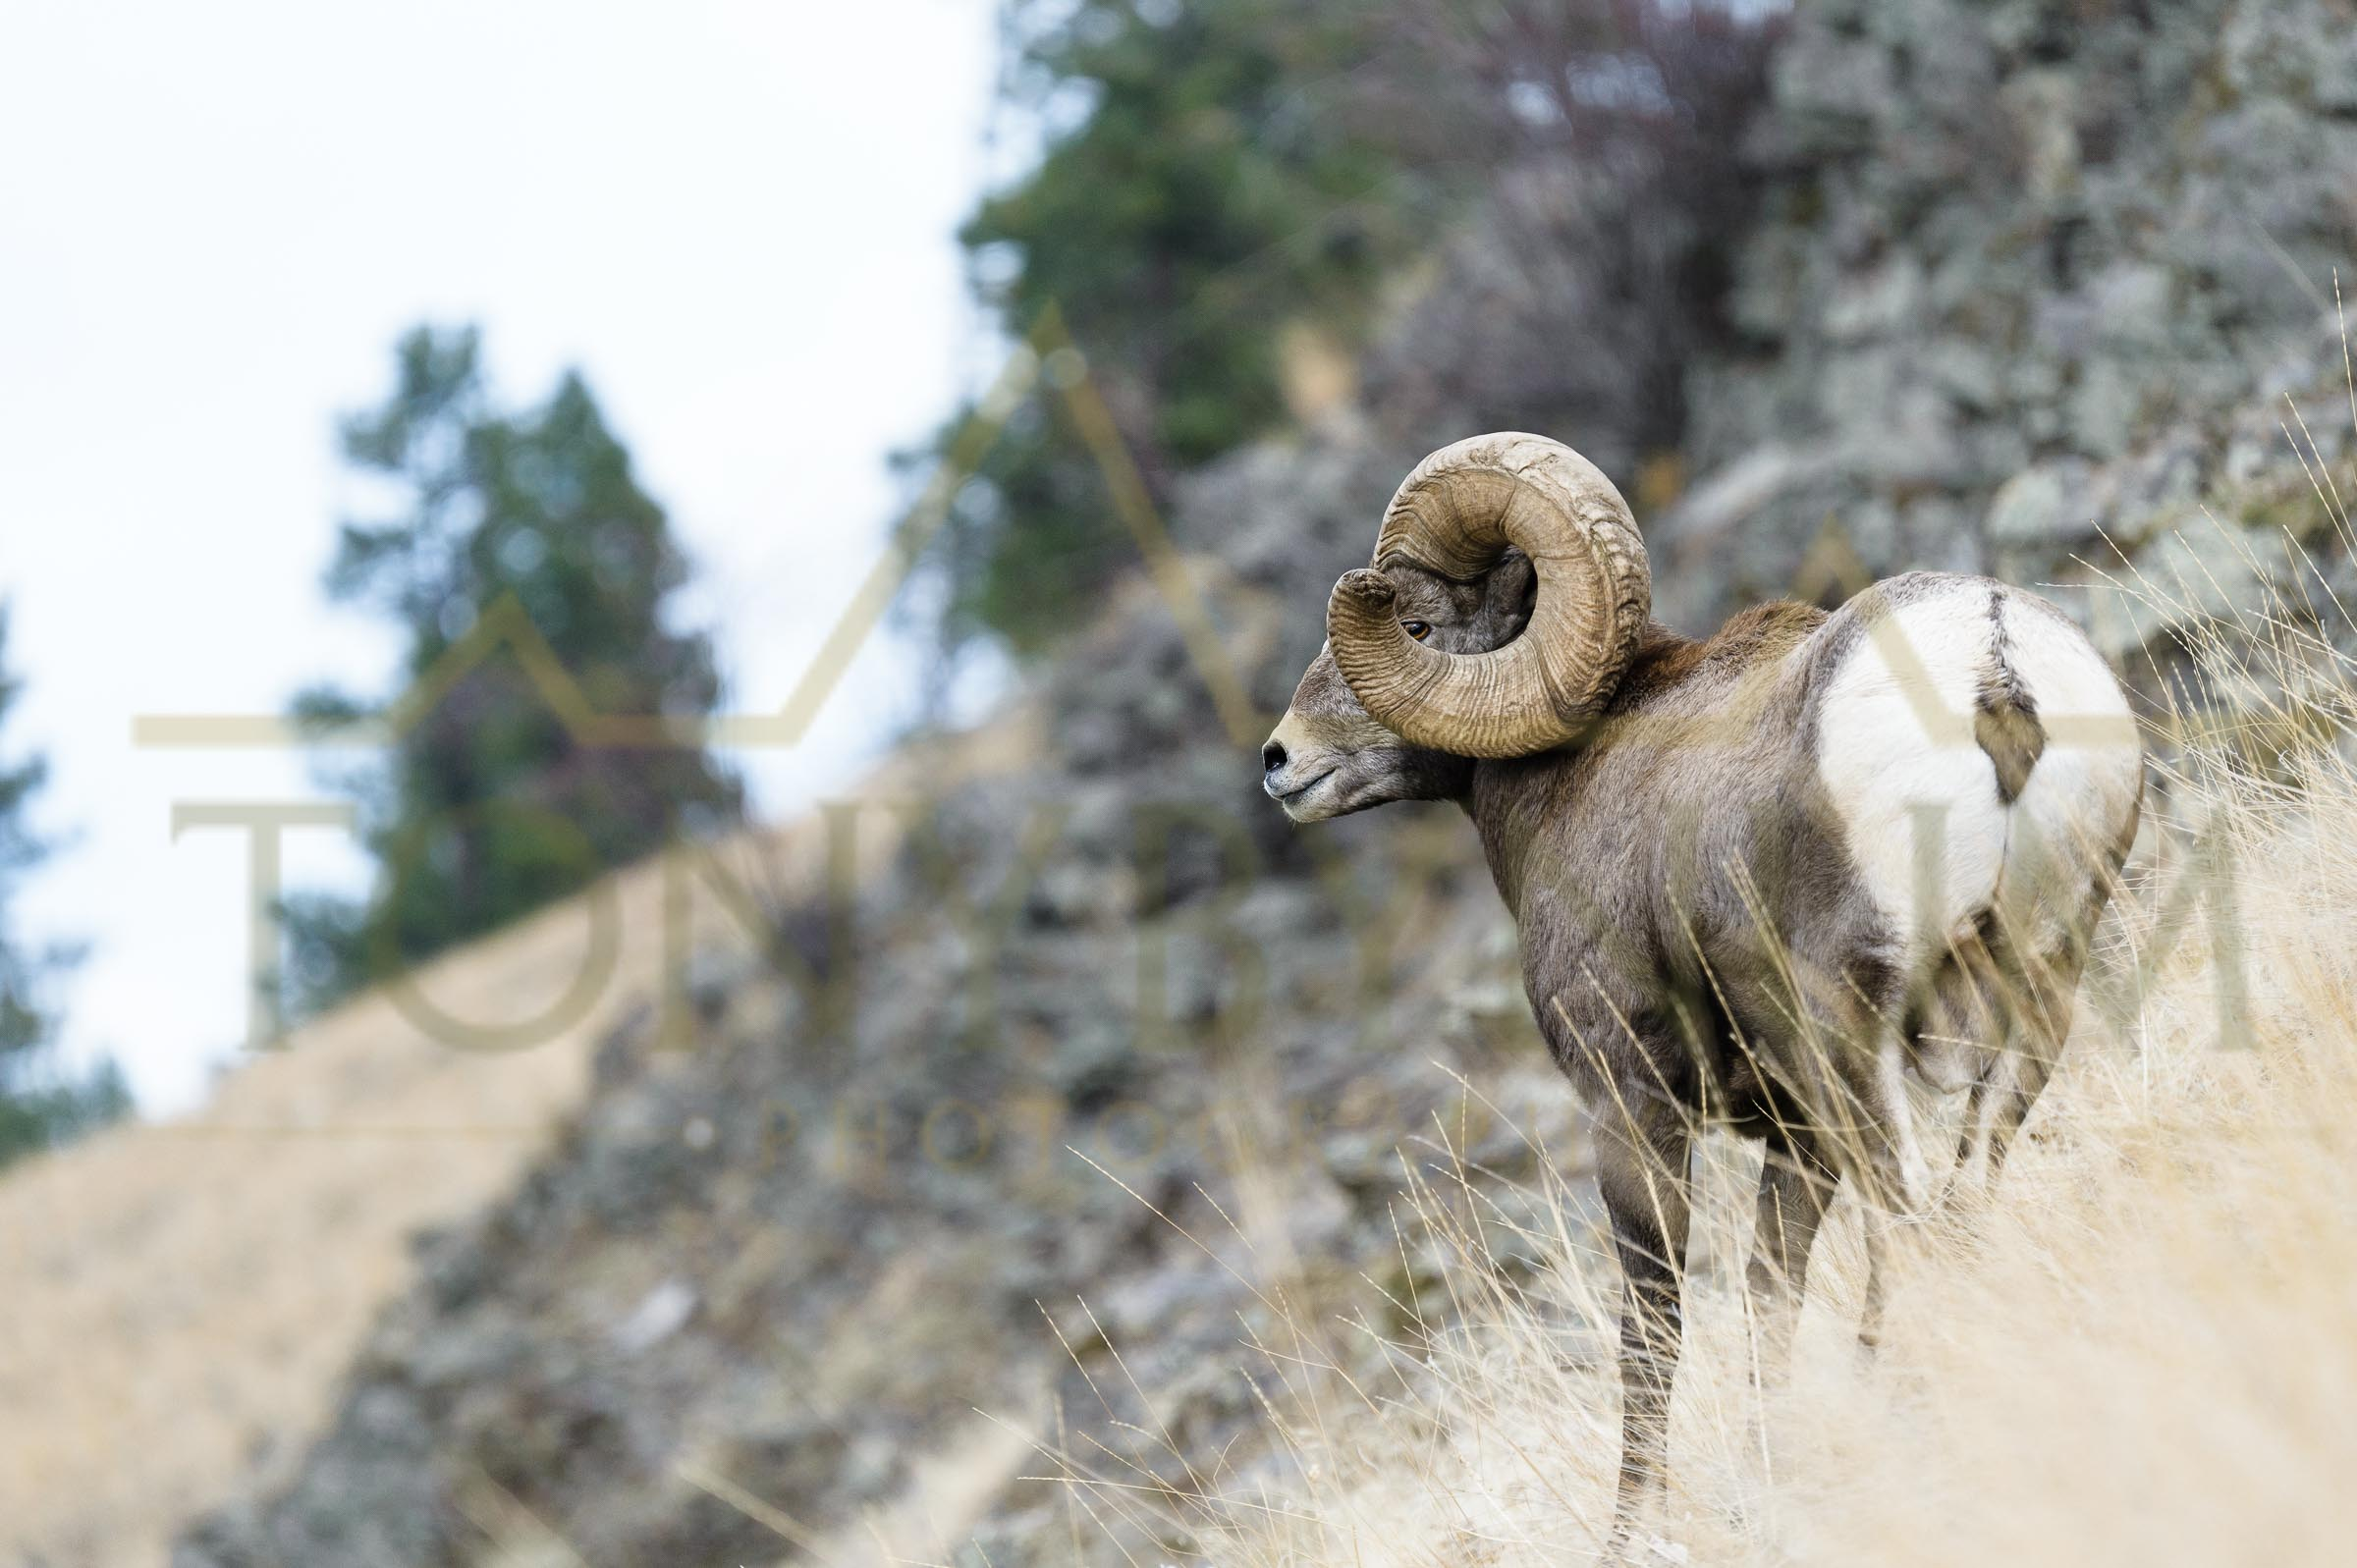 A photograph of the world record bighorn sheep from Wild Horse Island, Montana. ©tonybynum.com